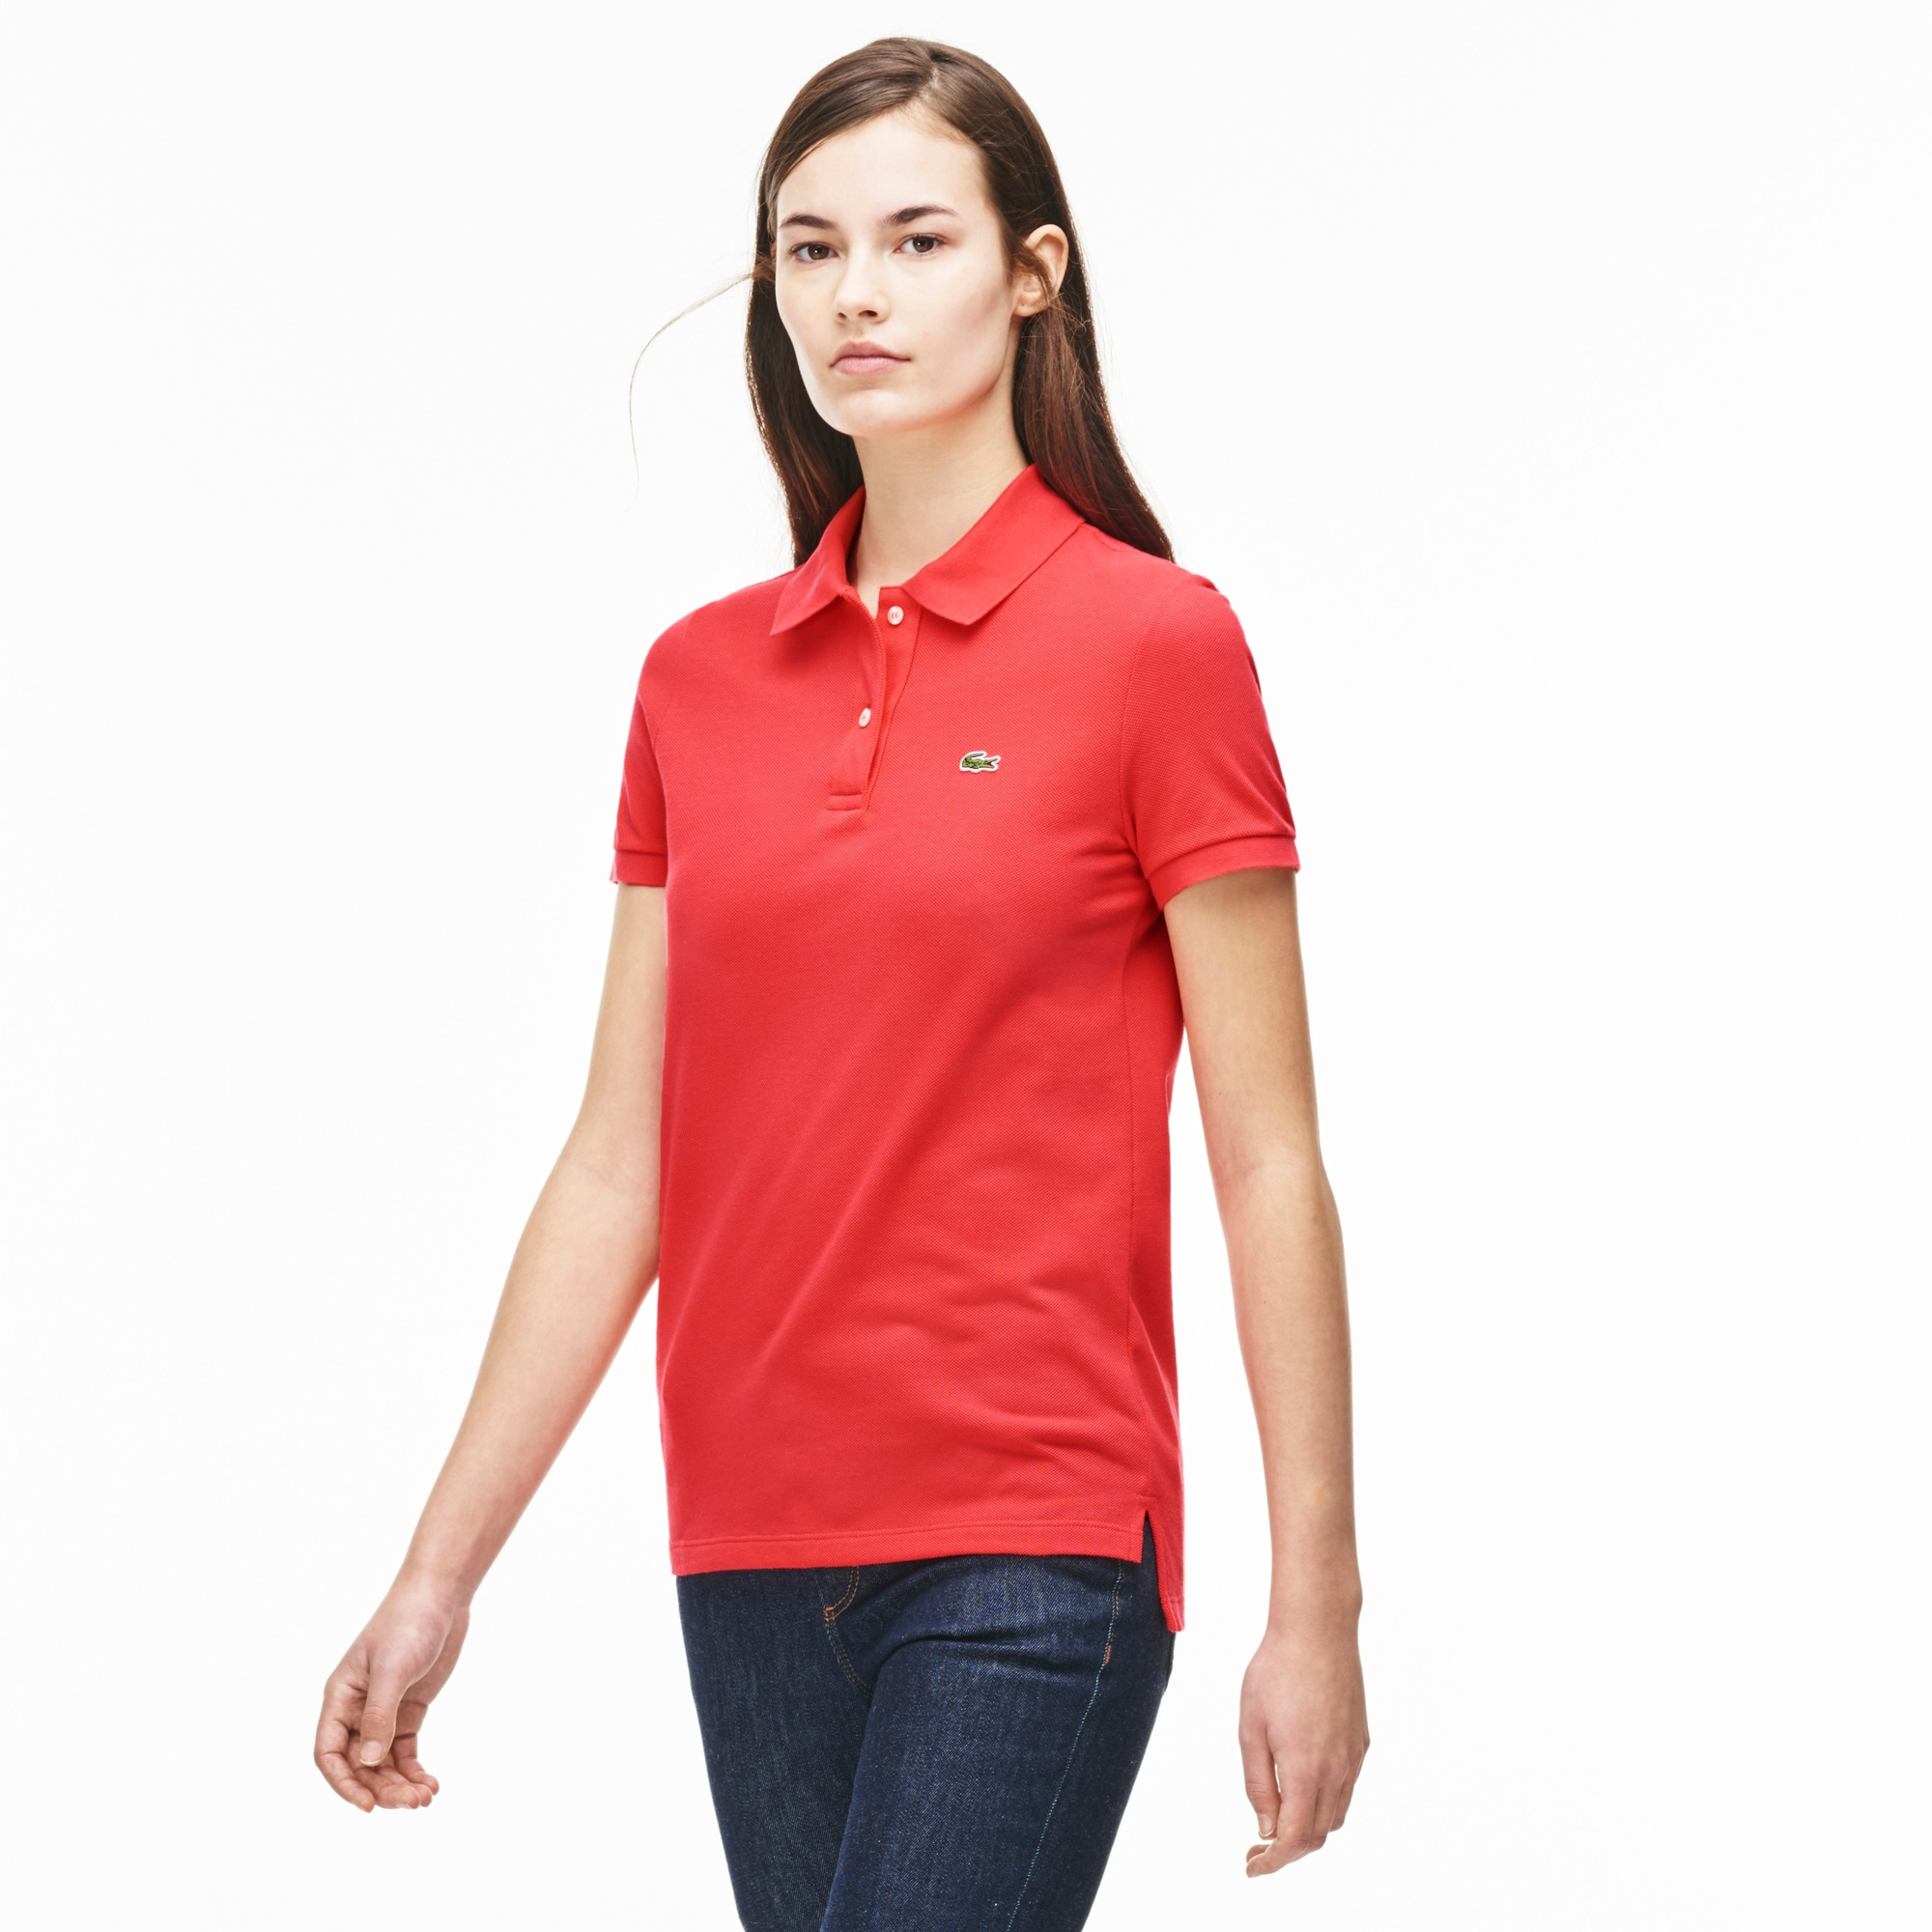 Women's Classic Fit Piqué Polo Shirt